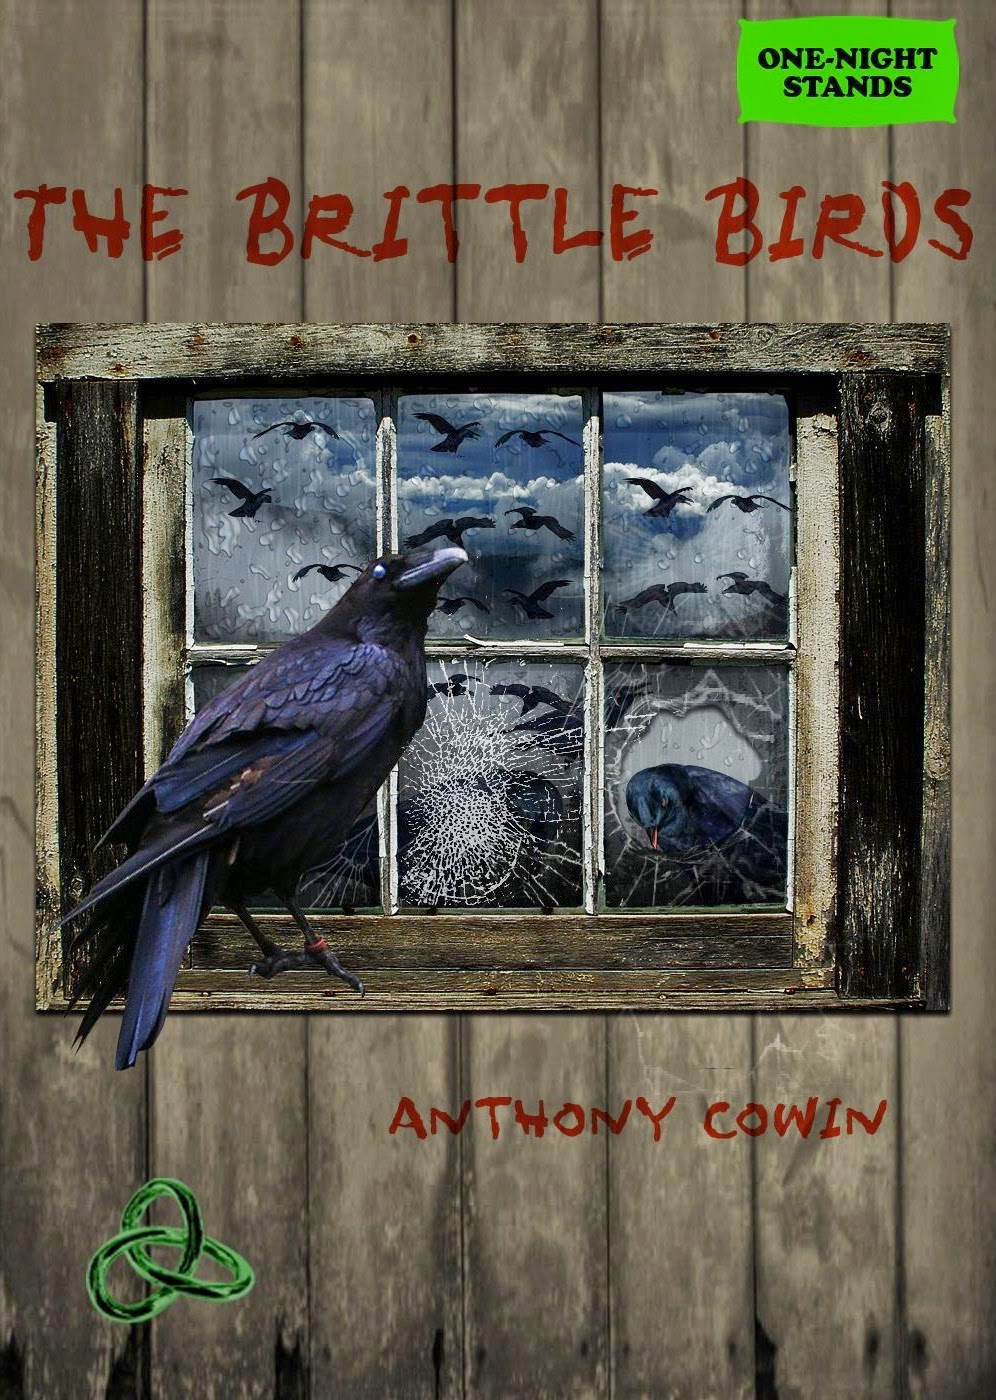 http://www.amazon.co.uk/Brittle-Birds-Anthony-Cowin-ebook/dp/B00LDZXB6G/ref=sr_1_1?s=digital-text&ie=UTF8&qid=1410835036&sr=1-1&keywords=anthony+cowin